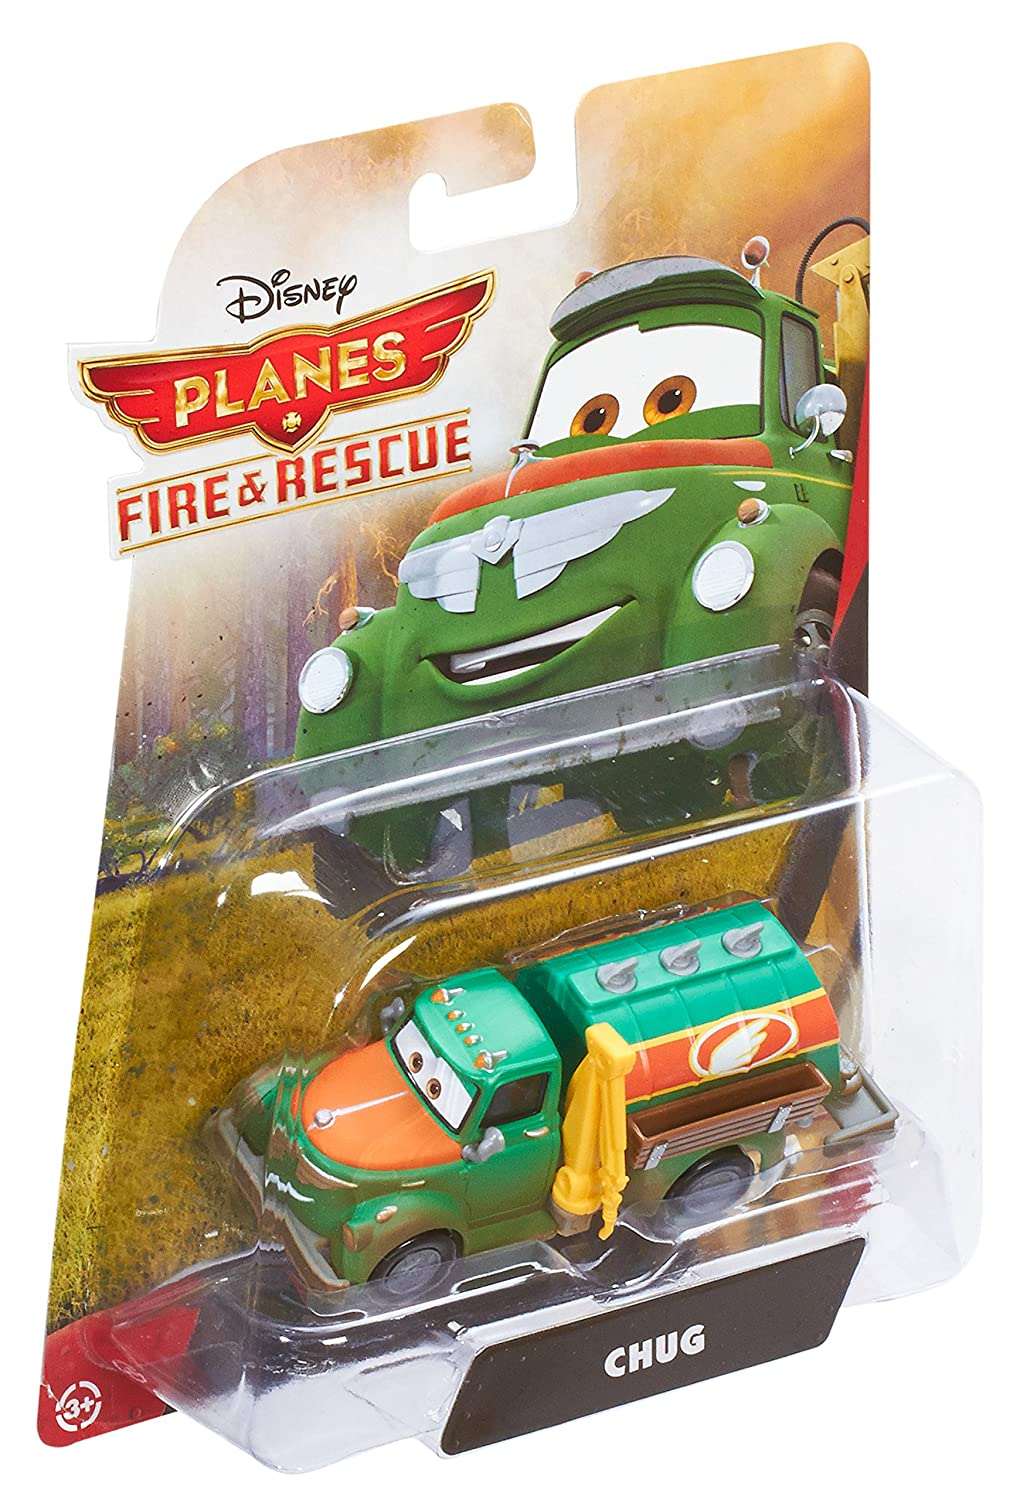 Disney Planes Fire and Rescue Chug Die-cast Vehicle Mattel CBN13